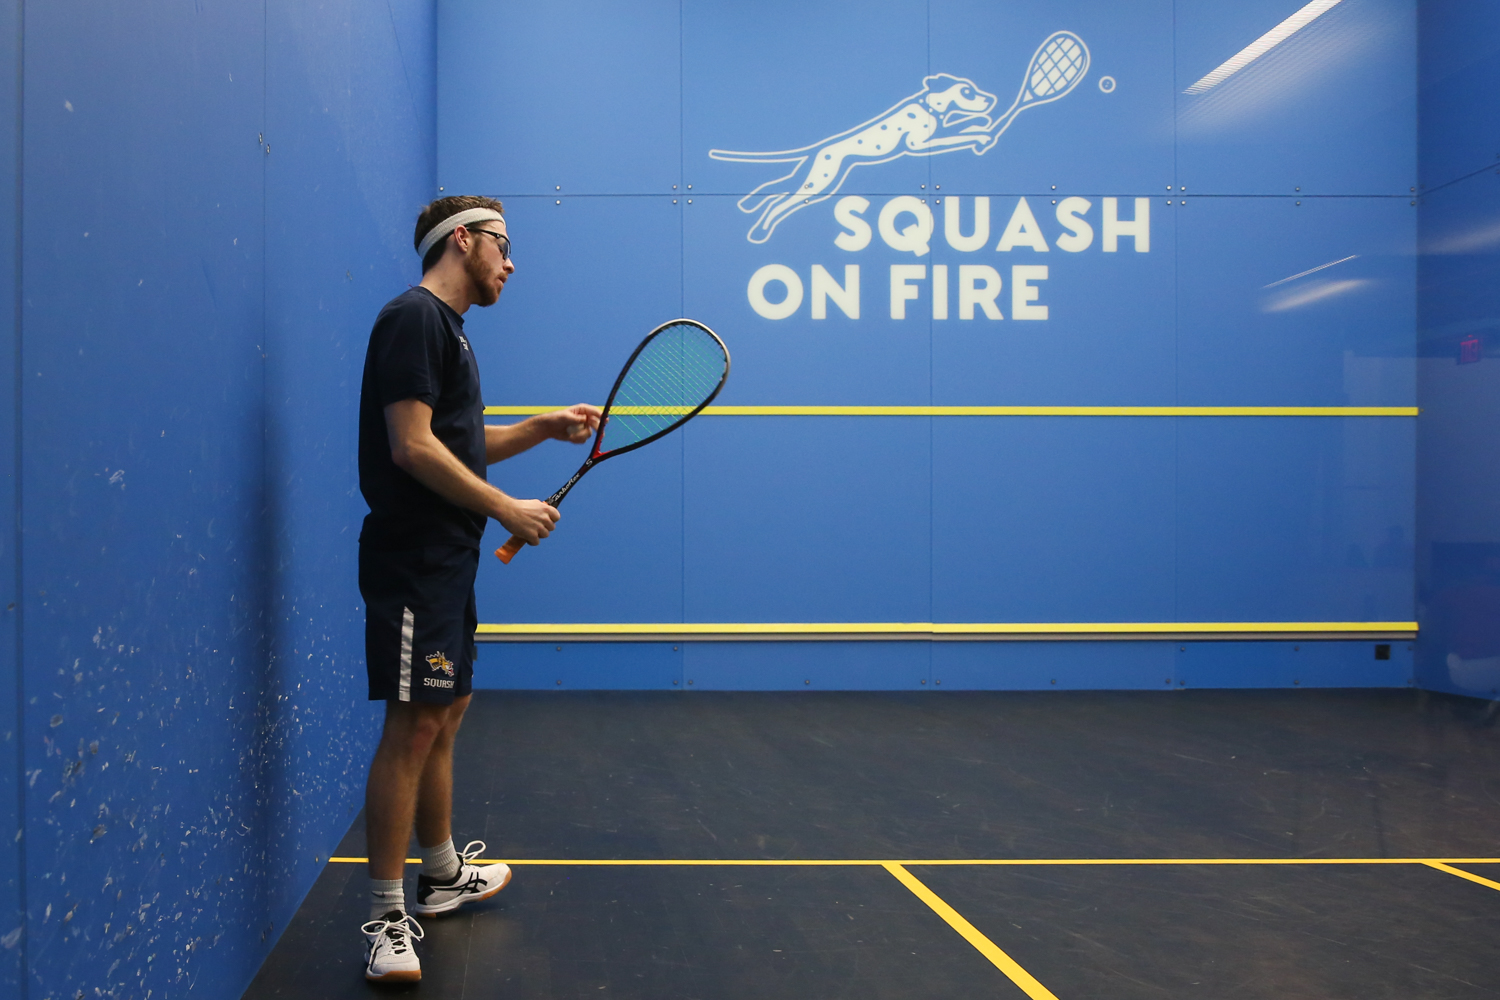 If you're still looking for weekend plans, fear not. March 2-4, you can head over to Squash on Fire in the West End and watch the College Squash Association's Individual Championships. The competition is shaping up to be pretty dramatic, even for those of us who don't totally understand squash - we saw at least one racquet tossed during a match. Although part of the competition is also happening at the George Washington campus, you can sit at Squash on Fire's Upper West Side Cafe, grab a few drinks and spend an afternoon watching squash matches up close and personal. (Amanda Andrade-Rhoades/DC Refined)